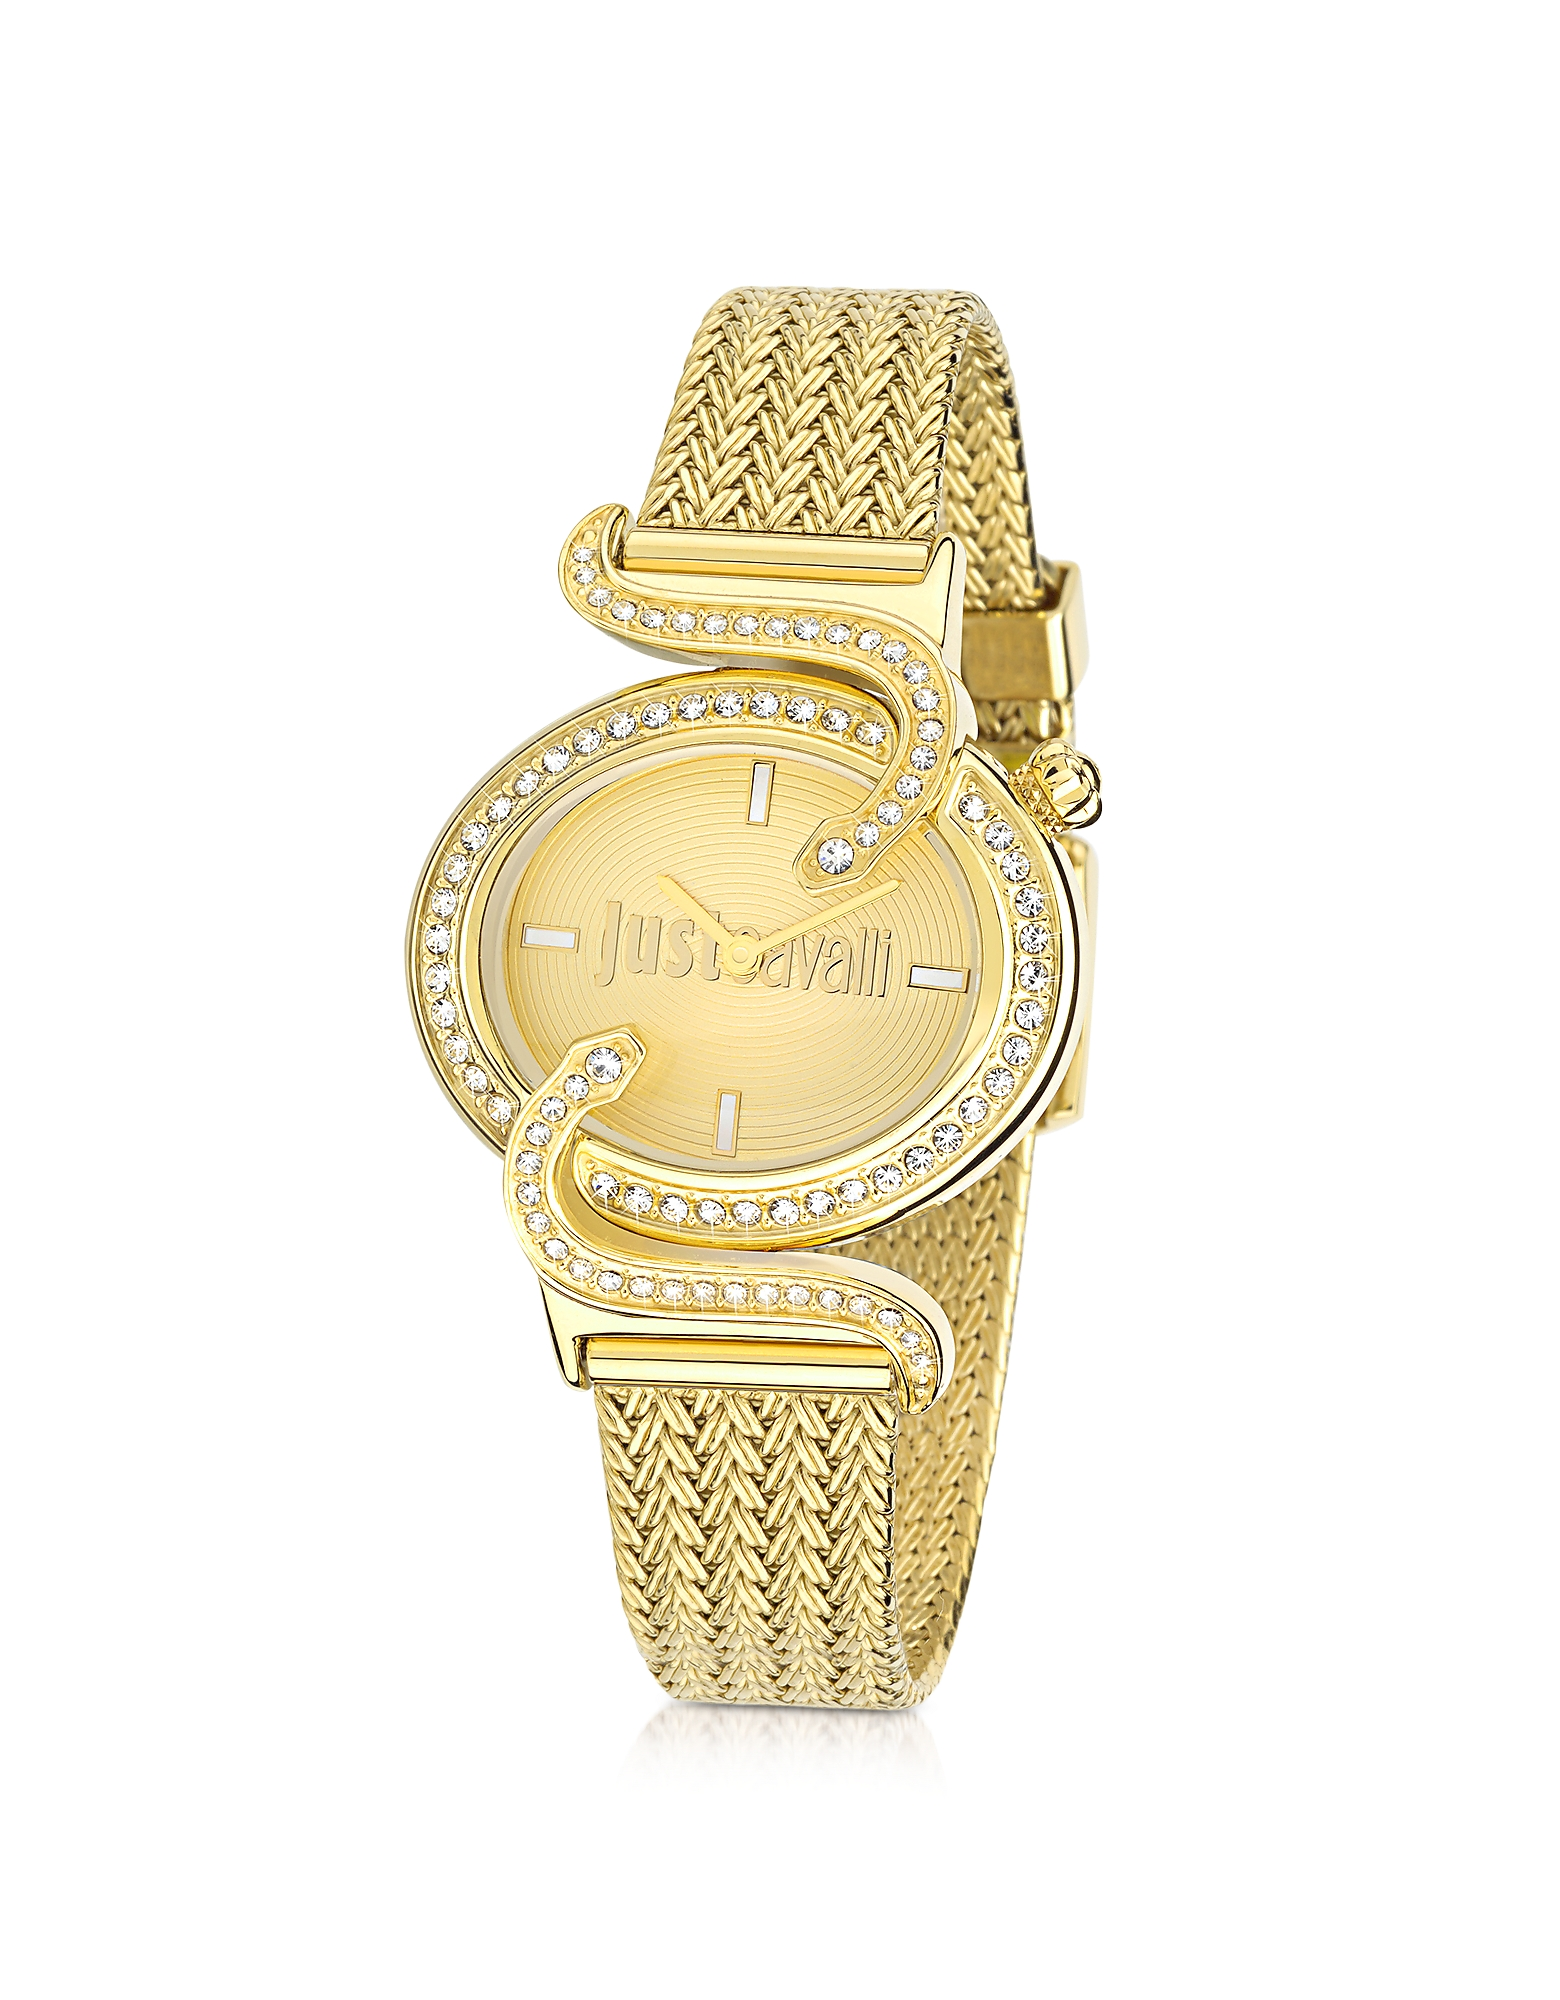 Just Cavalli Women's Watches, Sin JC Stainless Golden Steel Women's Watch